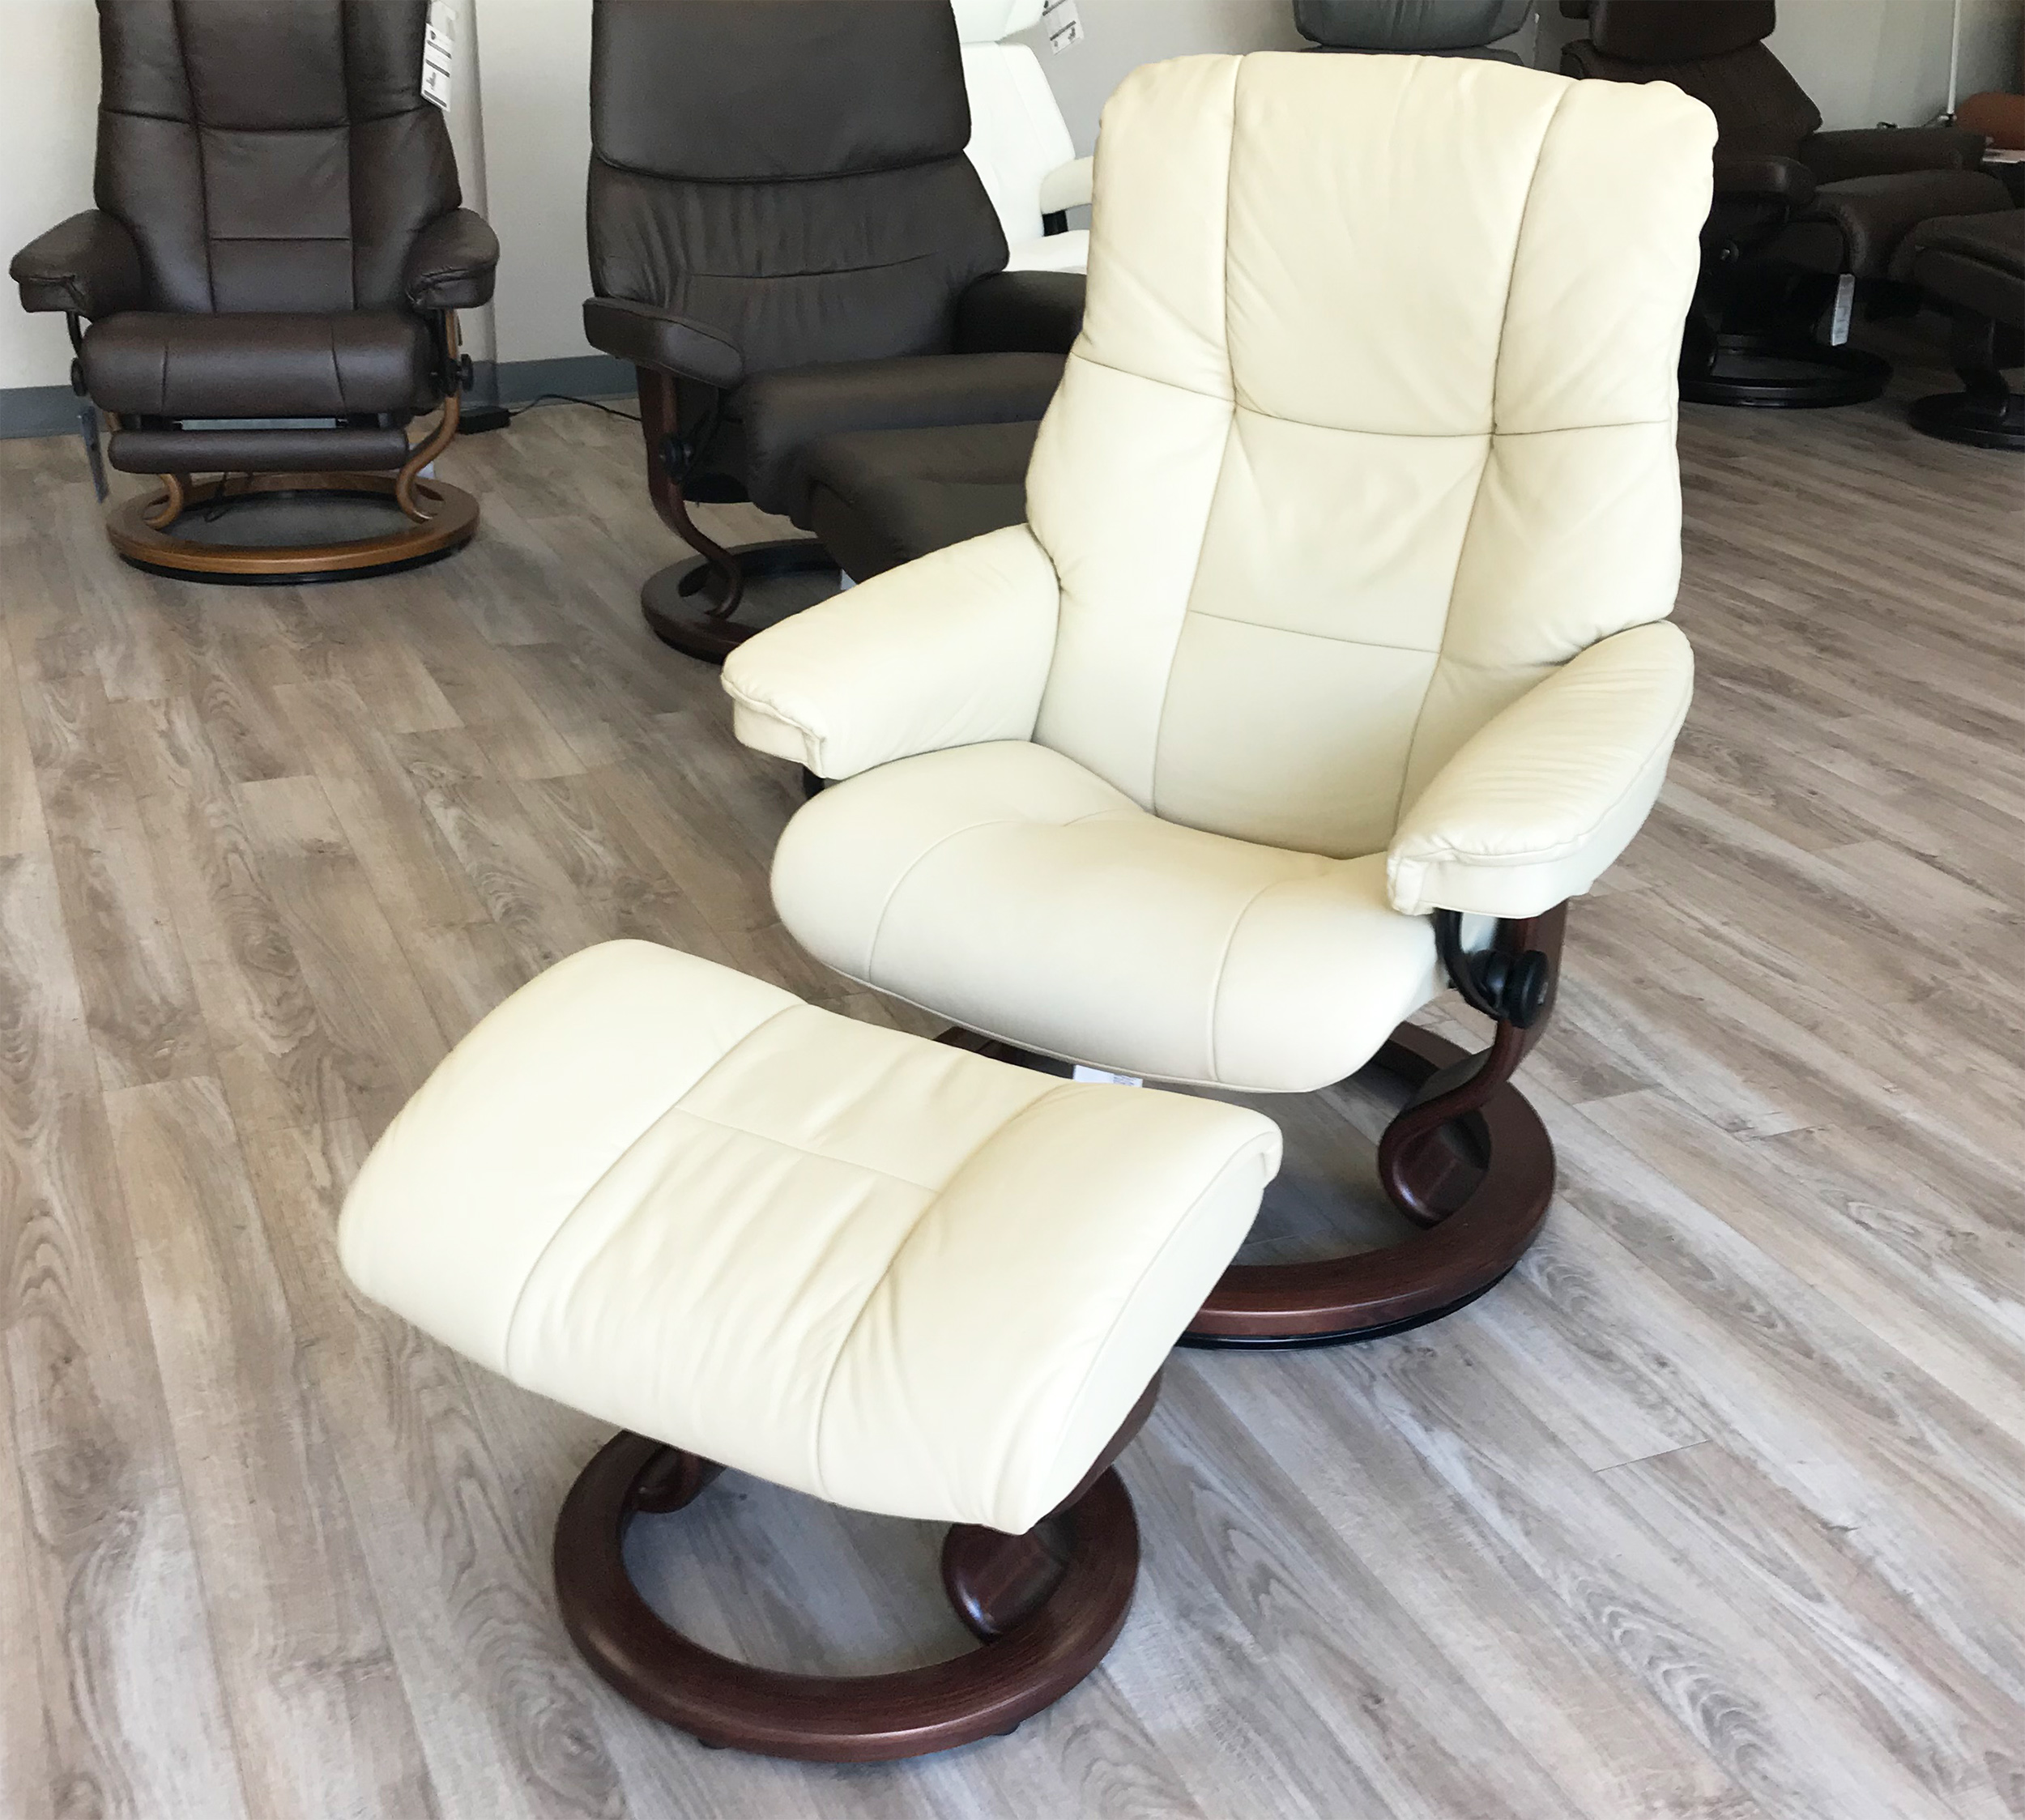 Stressless Chelsea Small Mayfair Paloma Kitt Leather